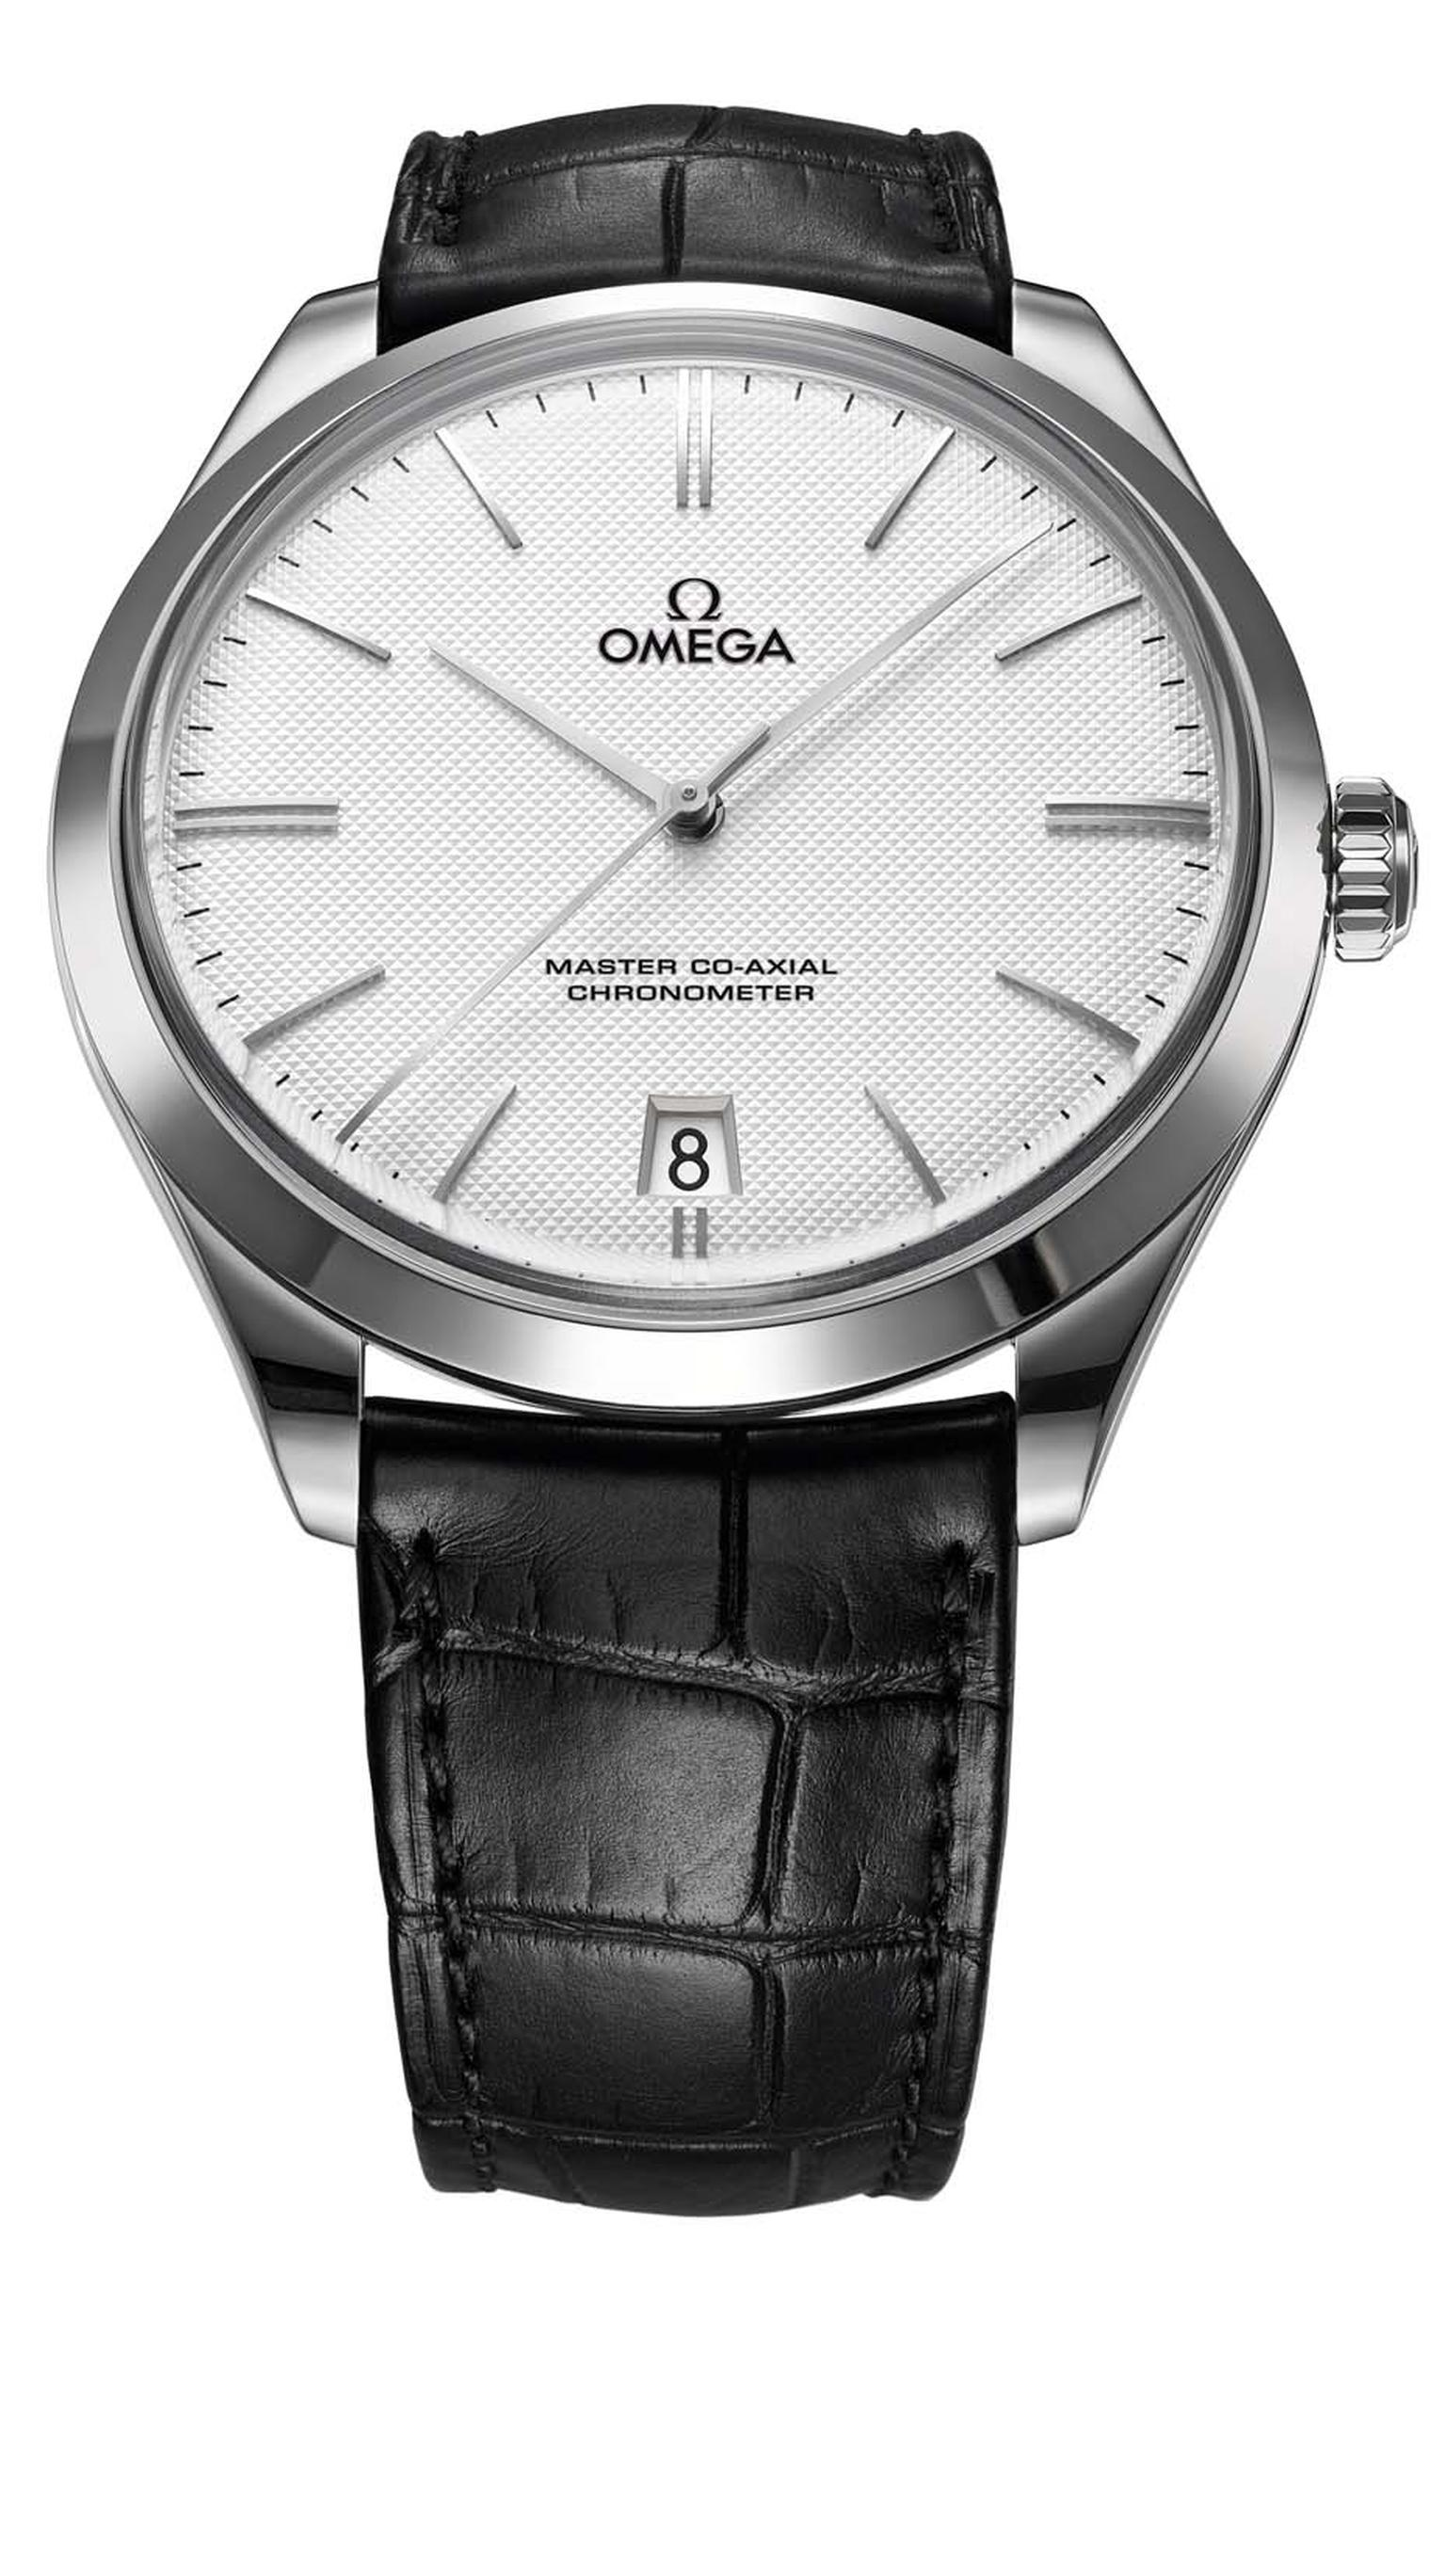 Omega De Ville Tre´sor men's dresswatch in white gold inspired by the original De Ville watches of 1949. This was the model worn by George Clooney on his wedding day.